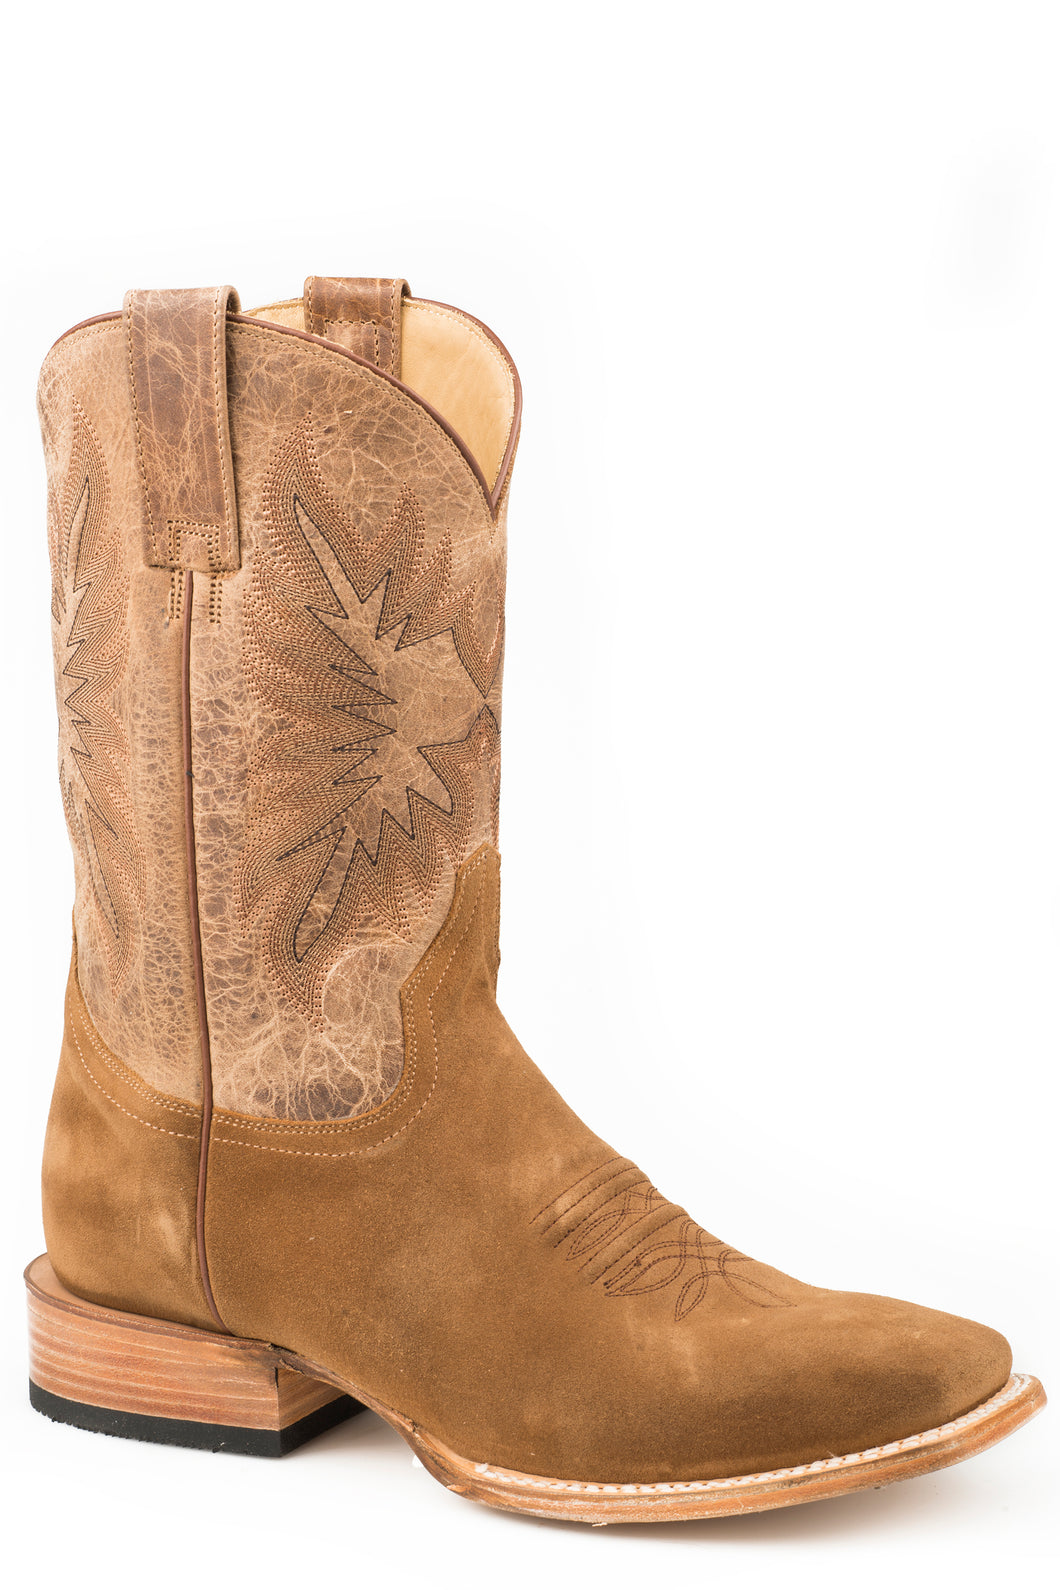 Bluff Boot Mens Boots All Over Tan Suede Vamp Shaft